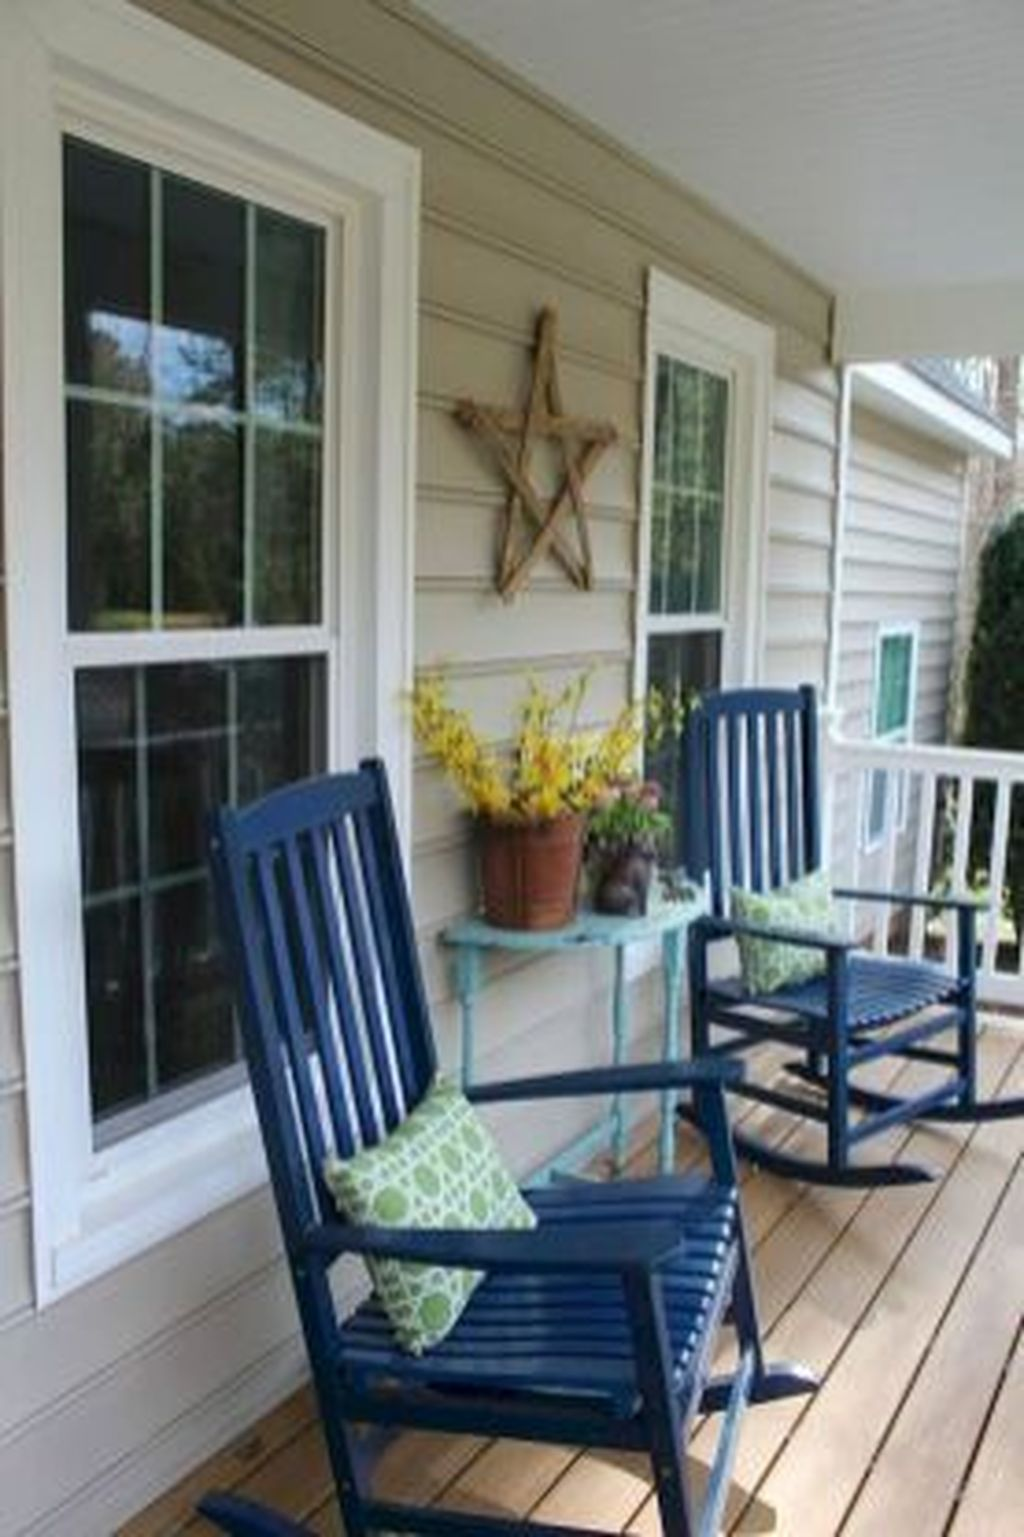 The Best Front Porch Ideas For Summer Decorating 10